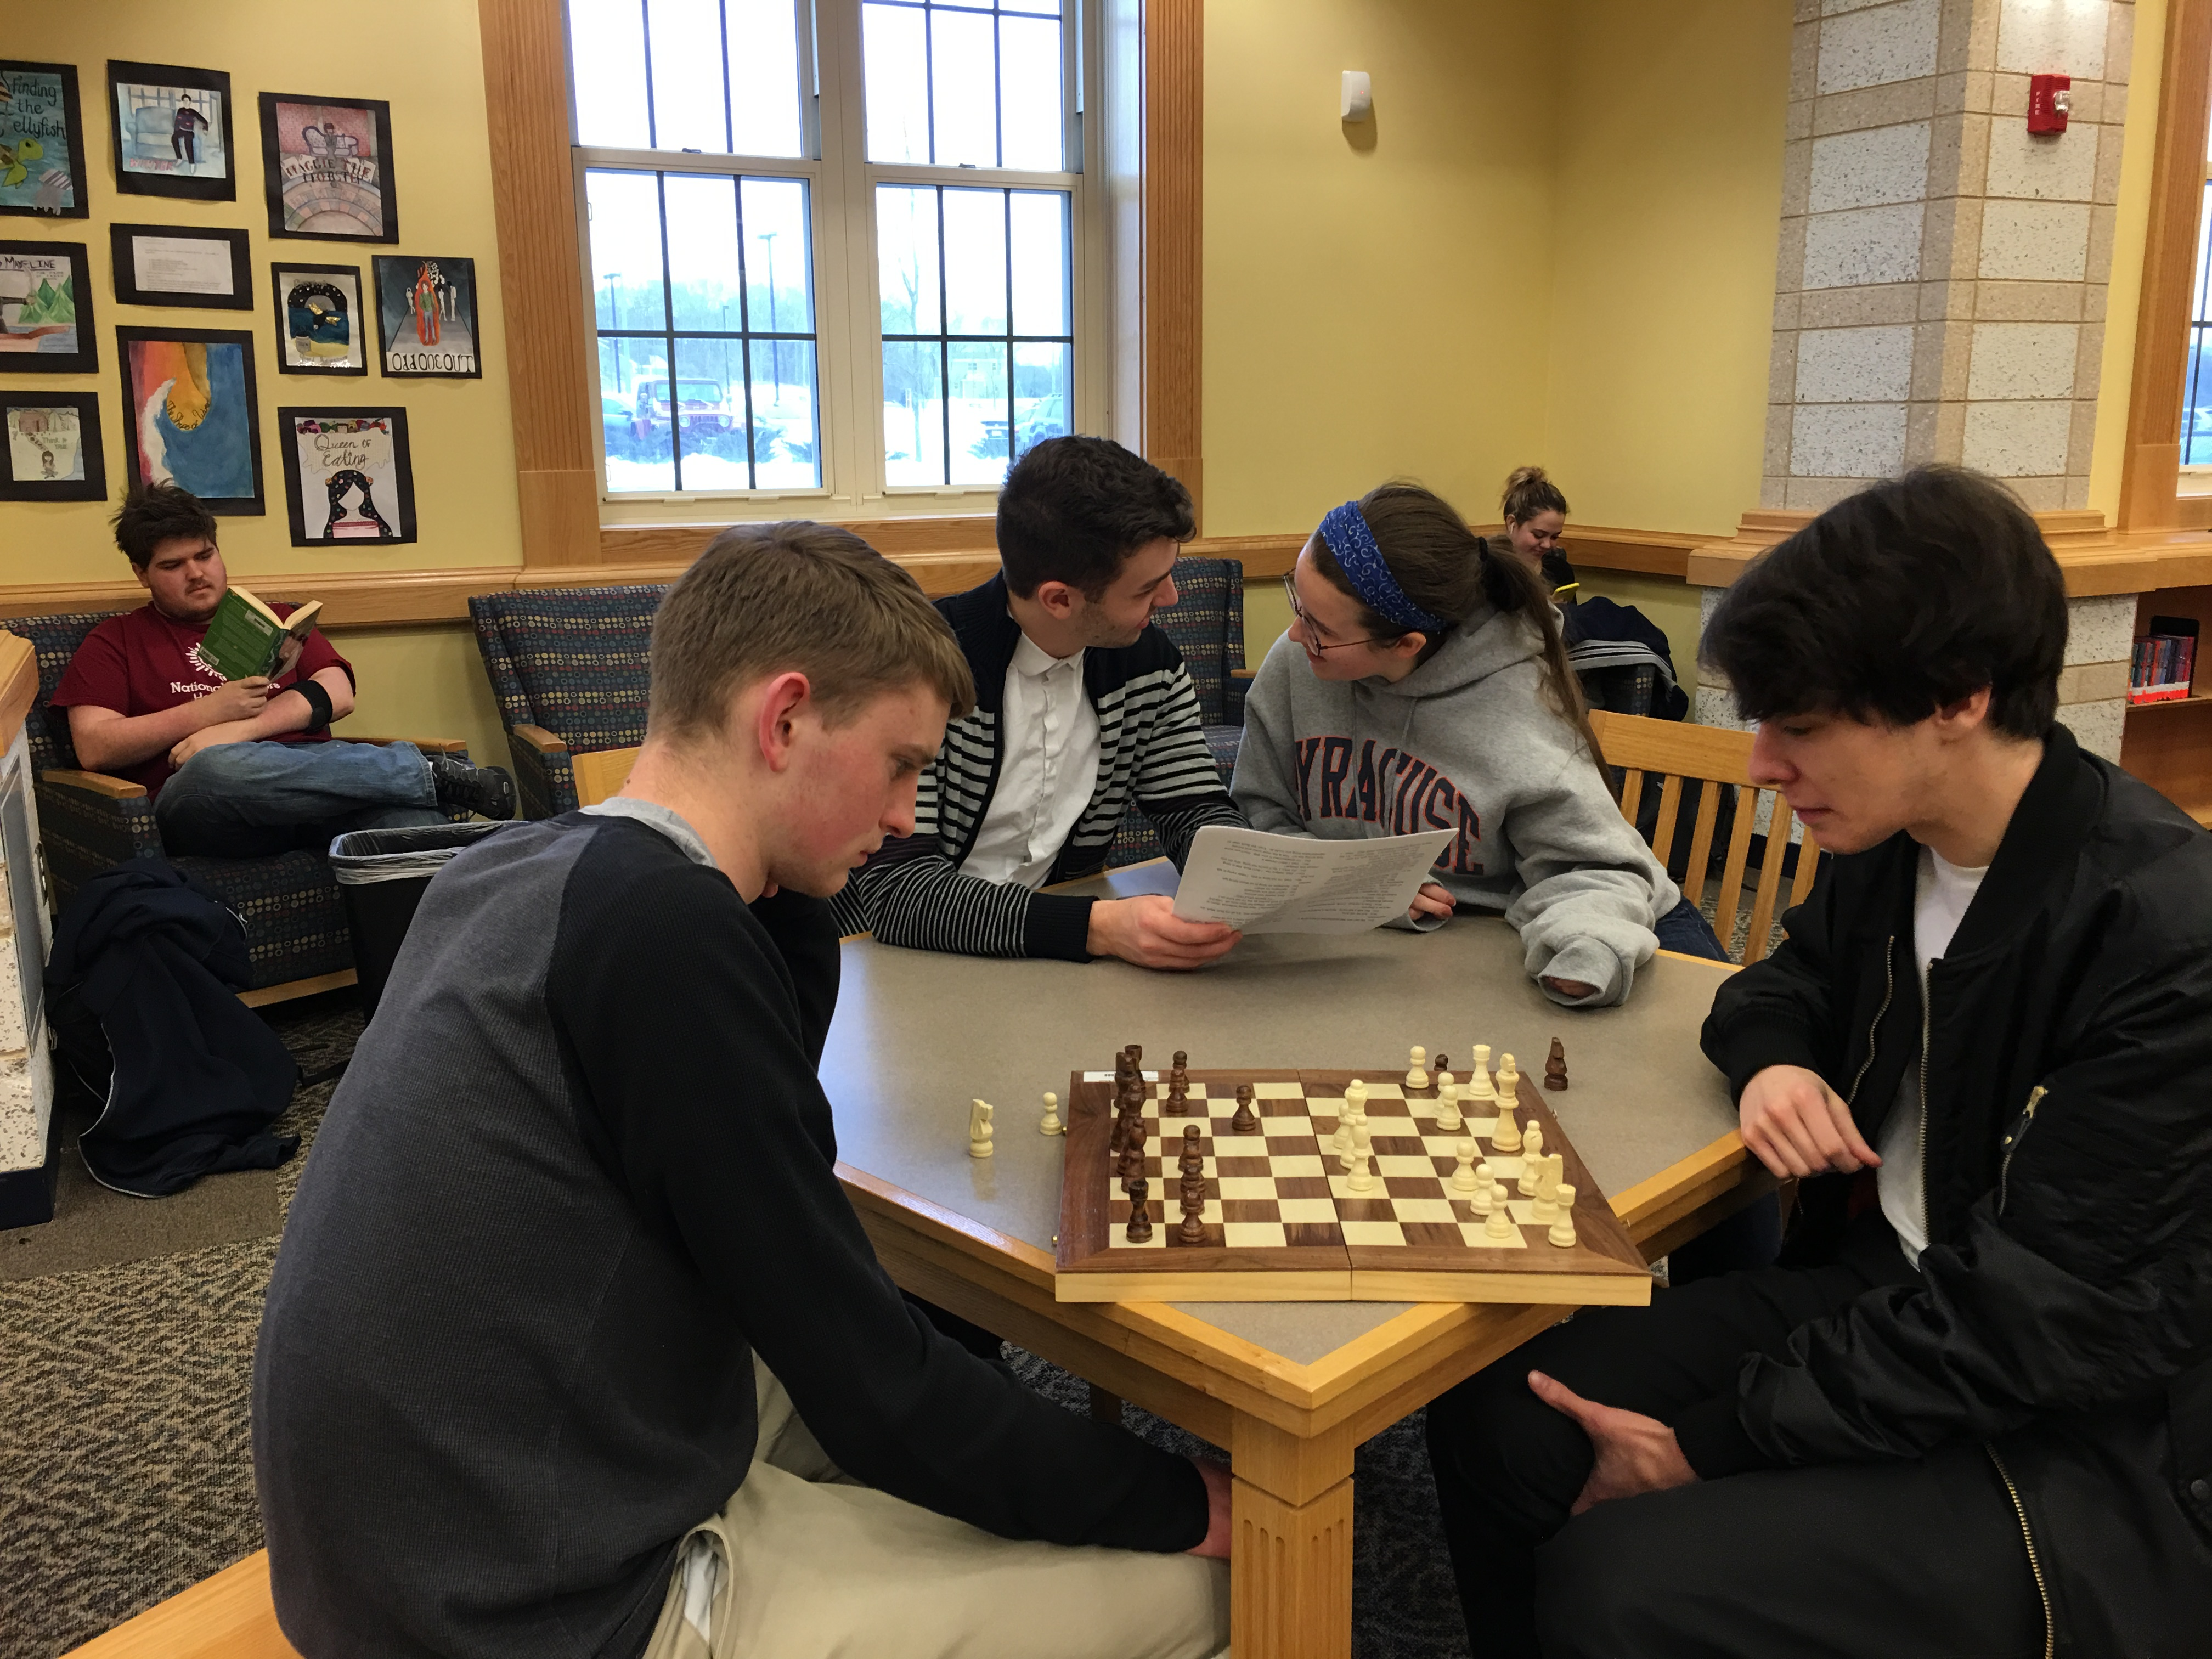 Students playing chess in the Learning Commons.